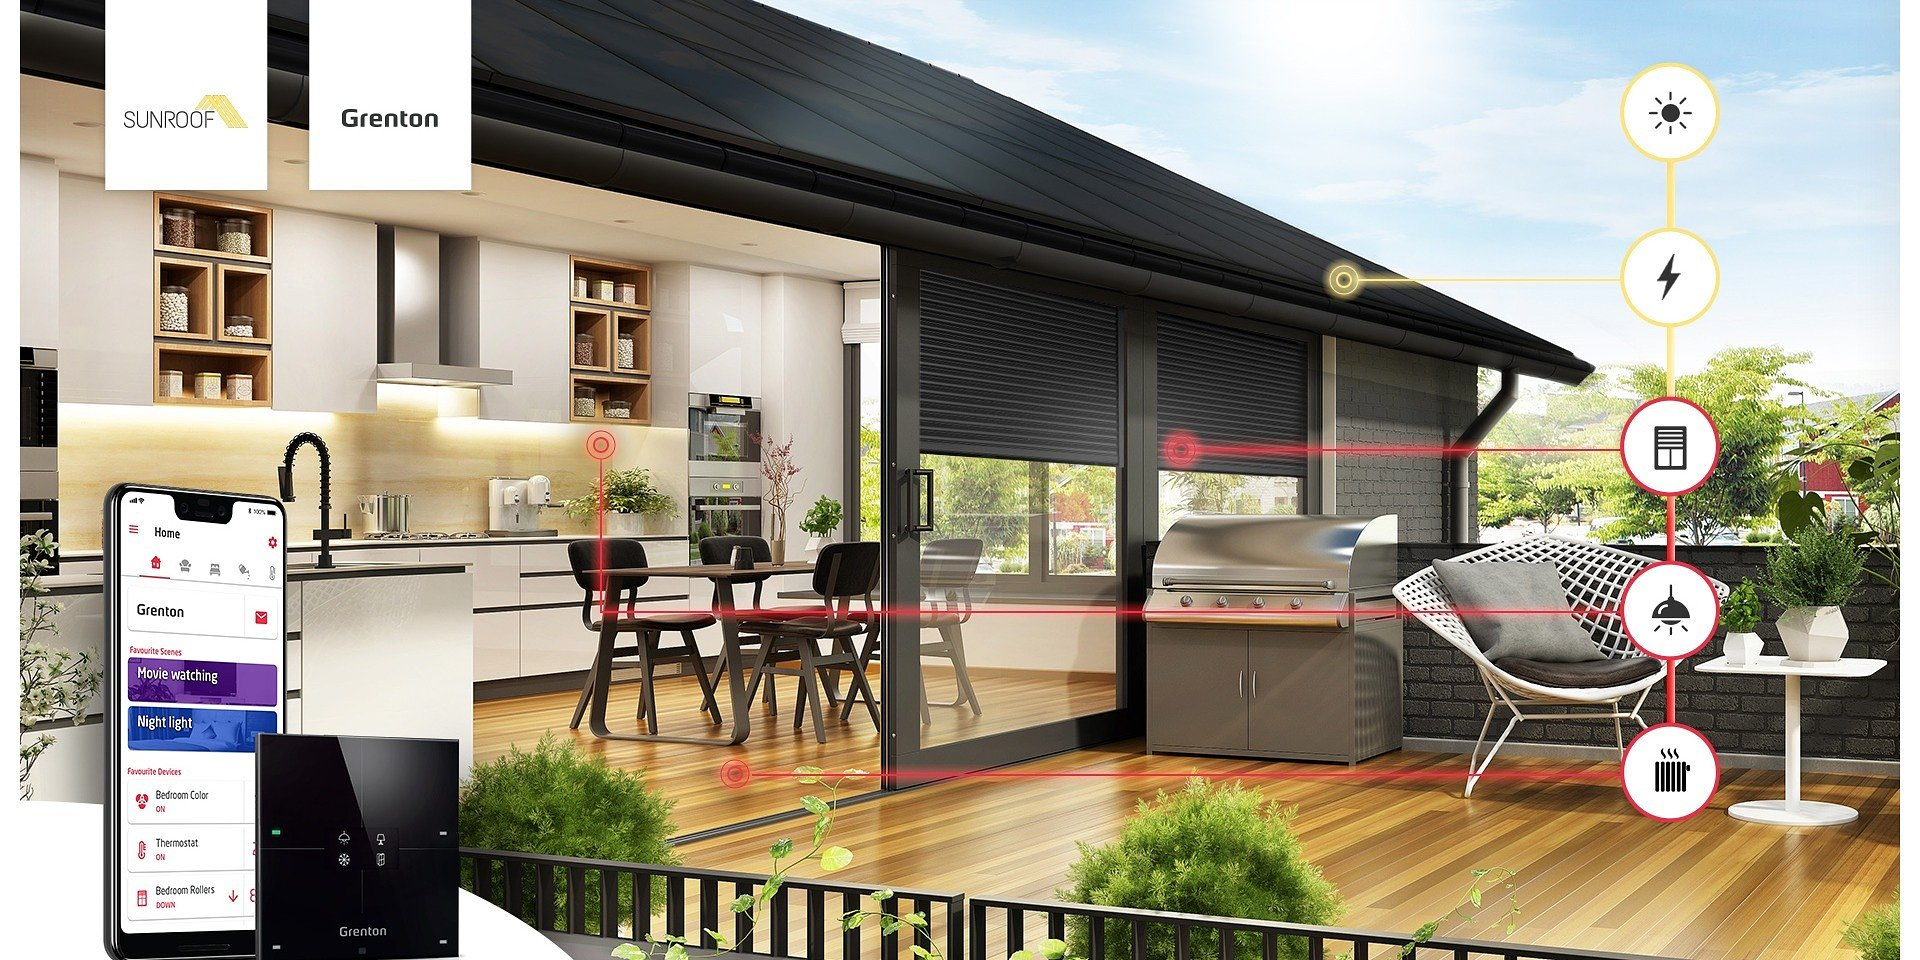 Solar Energy and Smart Home. Grenton has become a technological partner of SunRoof